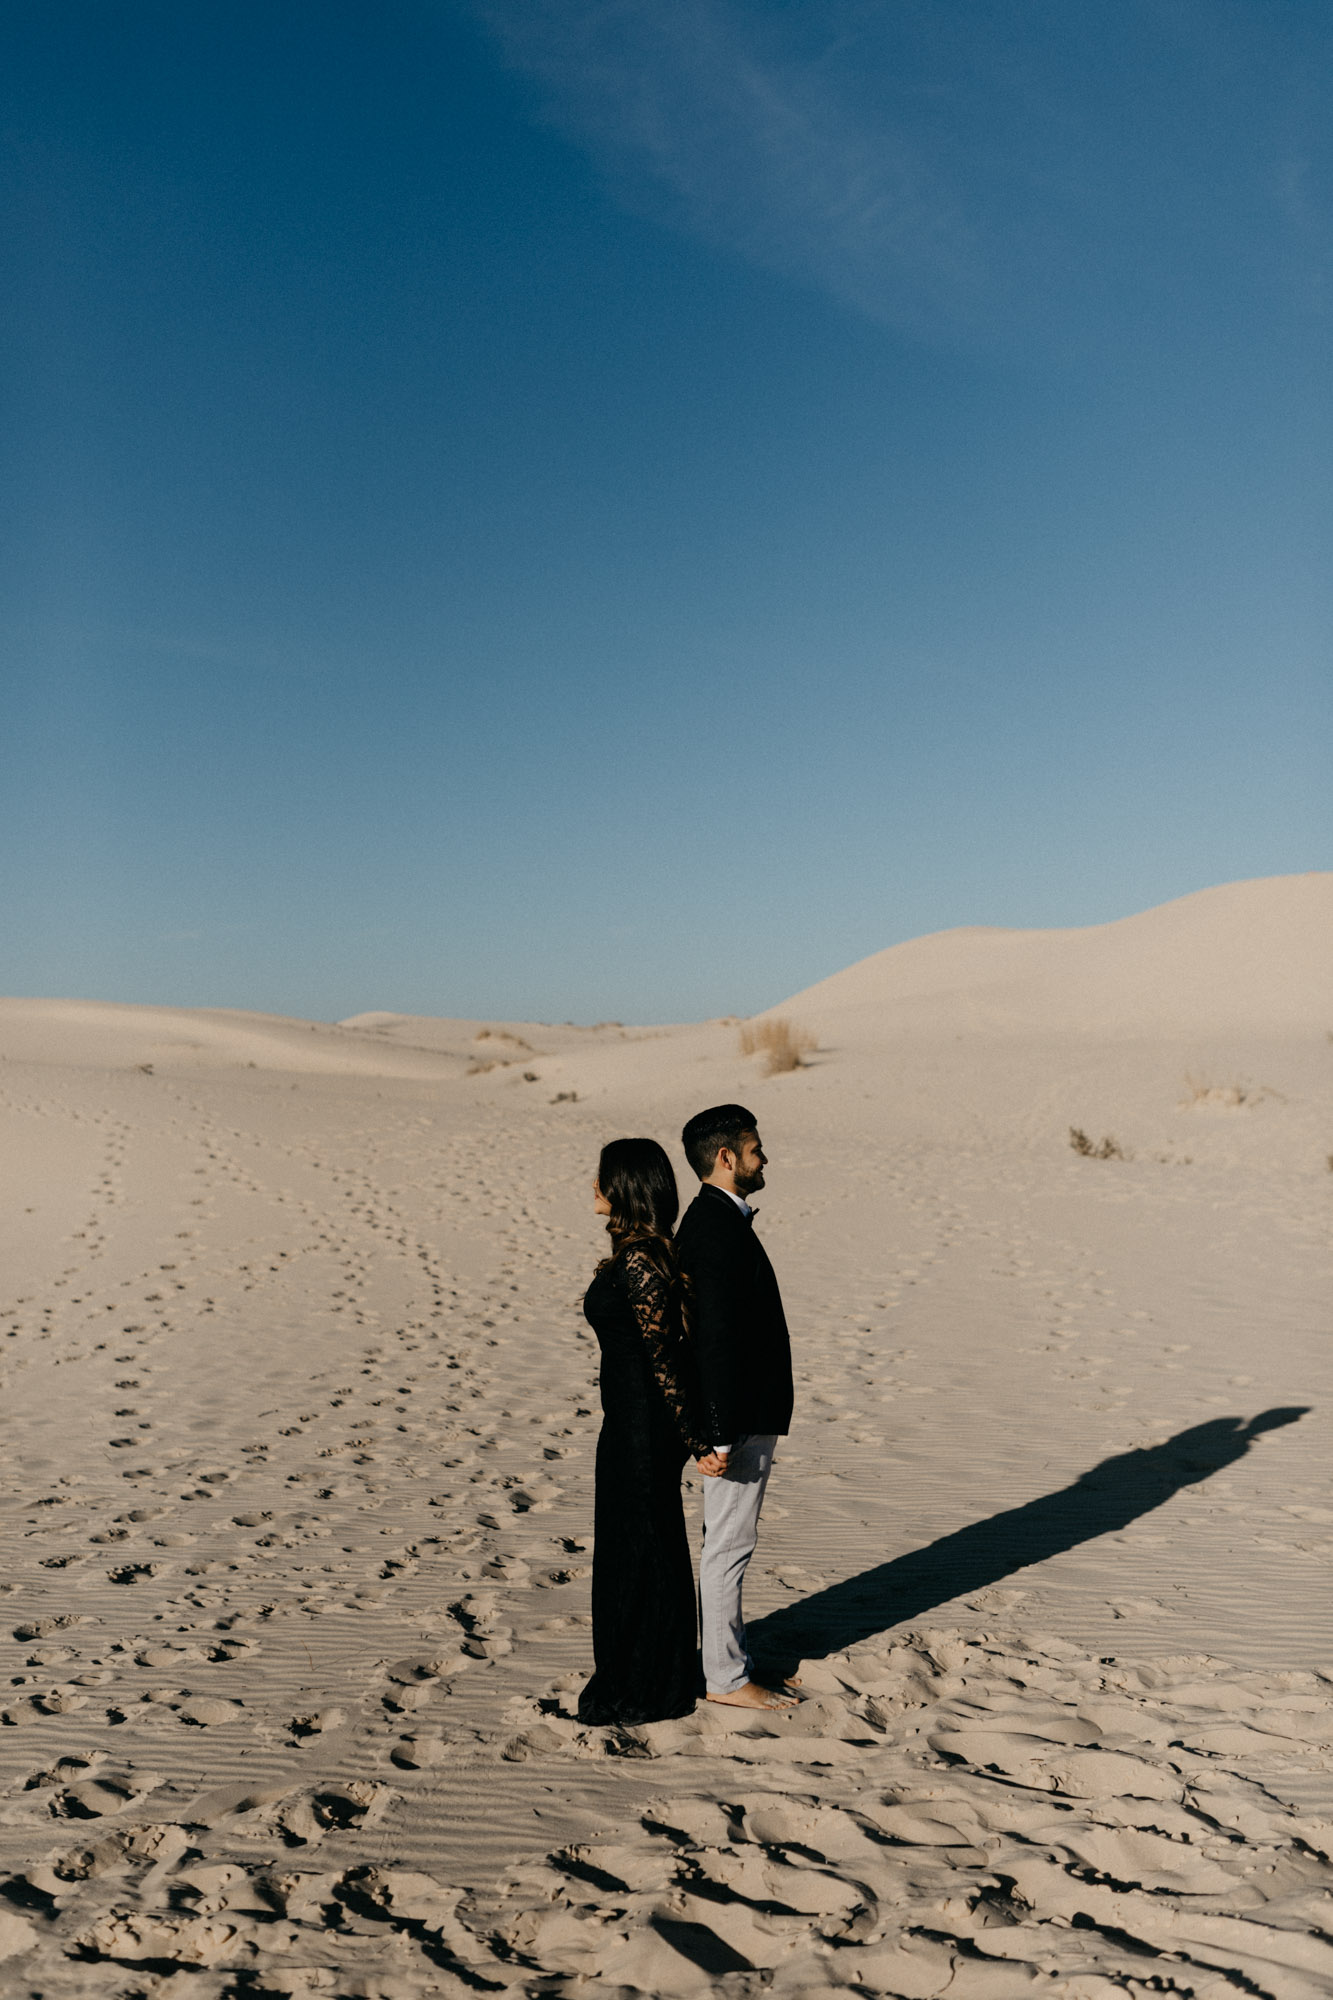 This desert inspired engagement session was so romantic it'll leave you wishing you were getting married